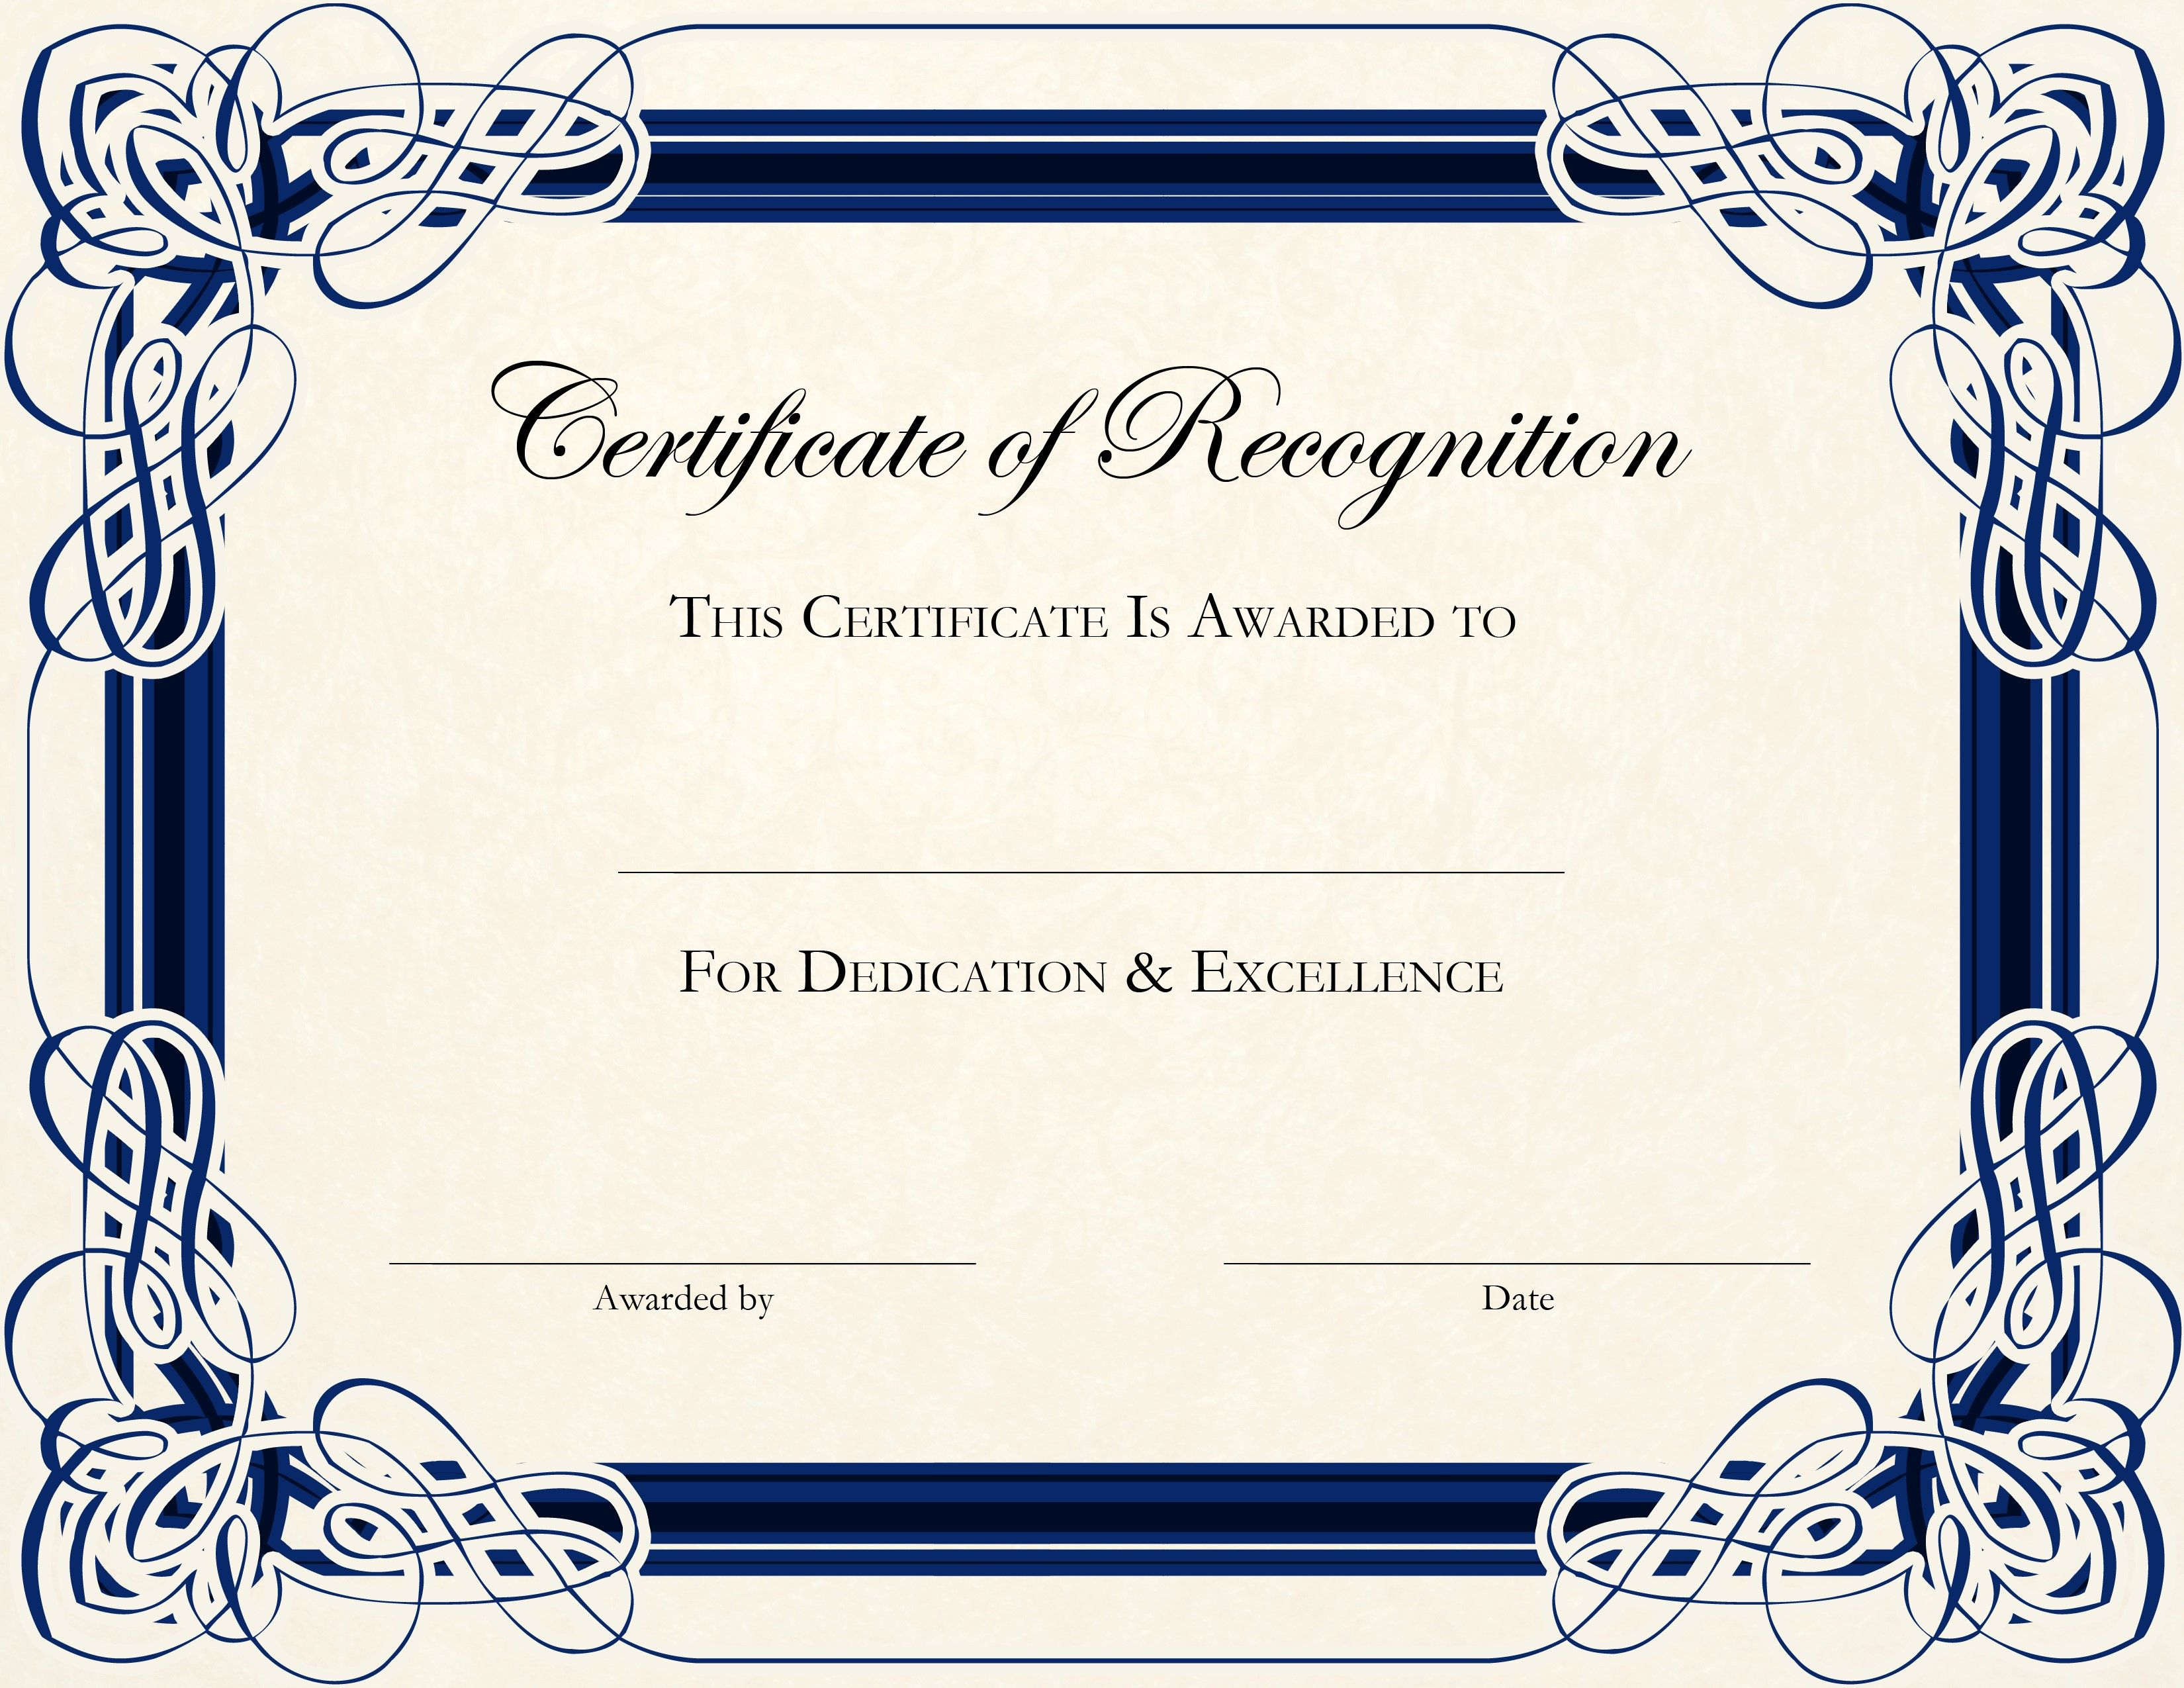 Free Printable Certificate Templates For Teachers | Besttemplate123 - Free Printable Certificates